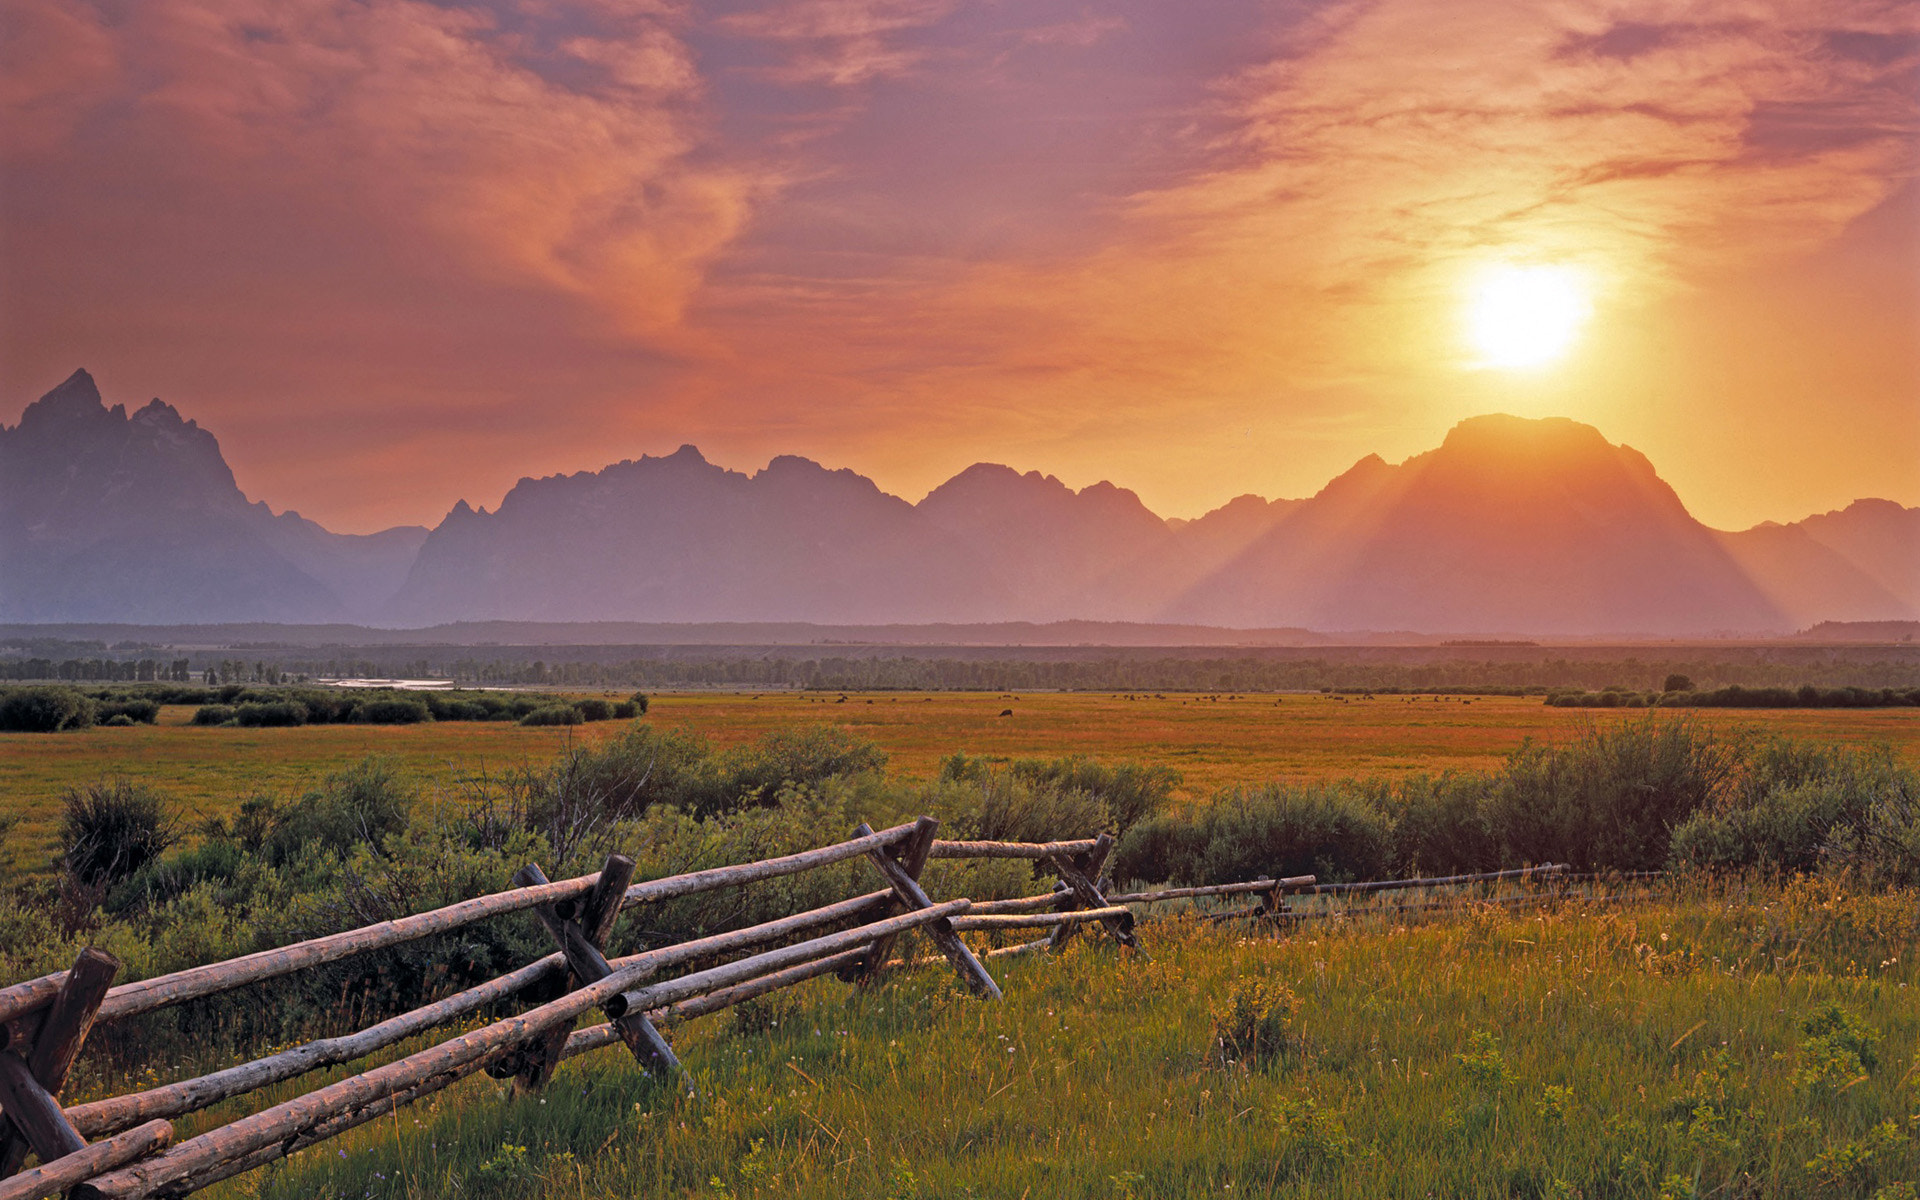 Photograph Sunset over the Grand Teton from the sagebrush flats; Grand Teto by DIXIT LORIYA on 500px